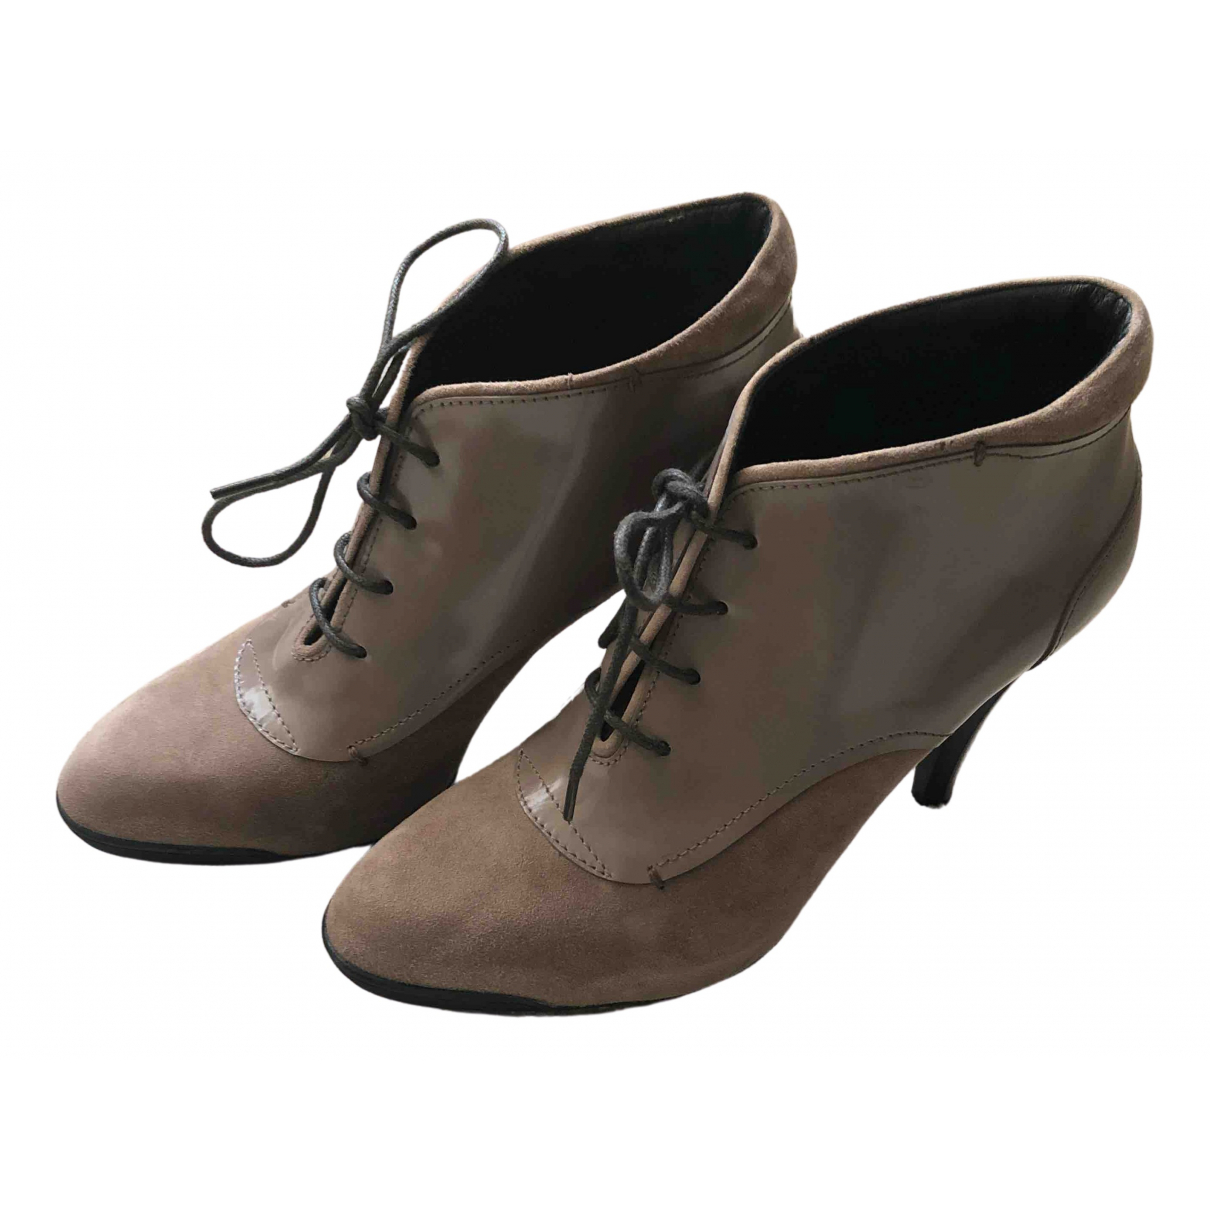 Tod's \N Beige Suede Ankle boots for Women 36 IT